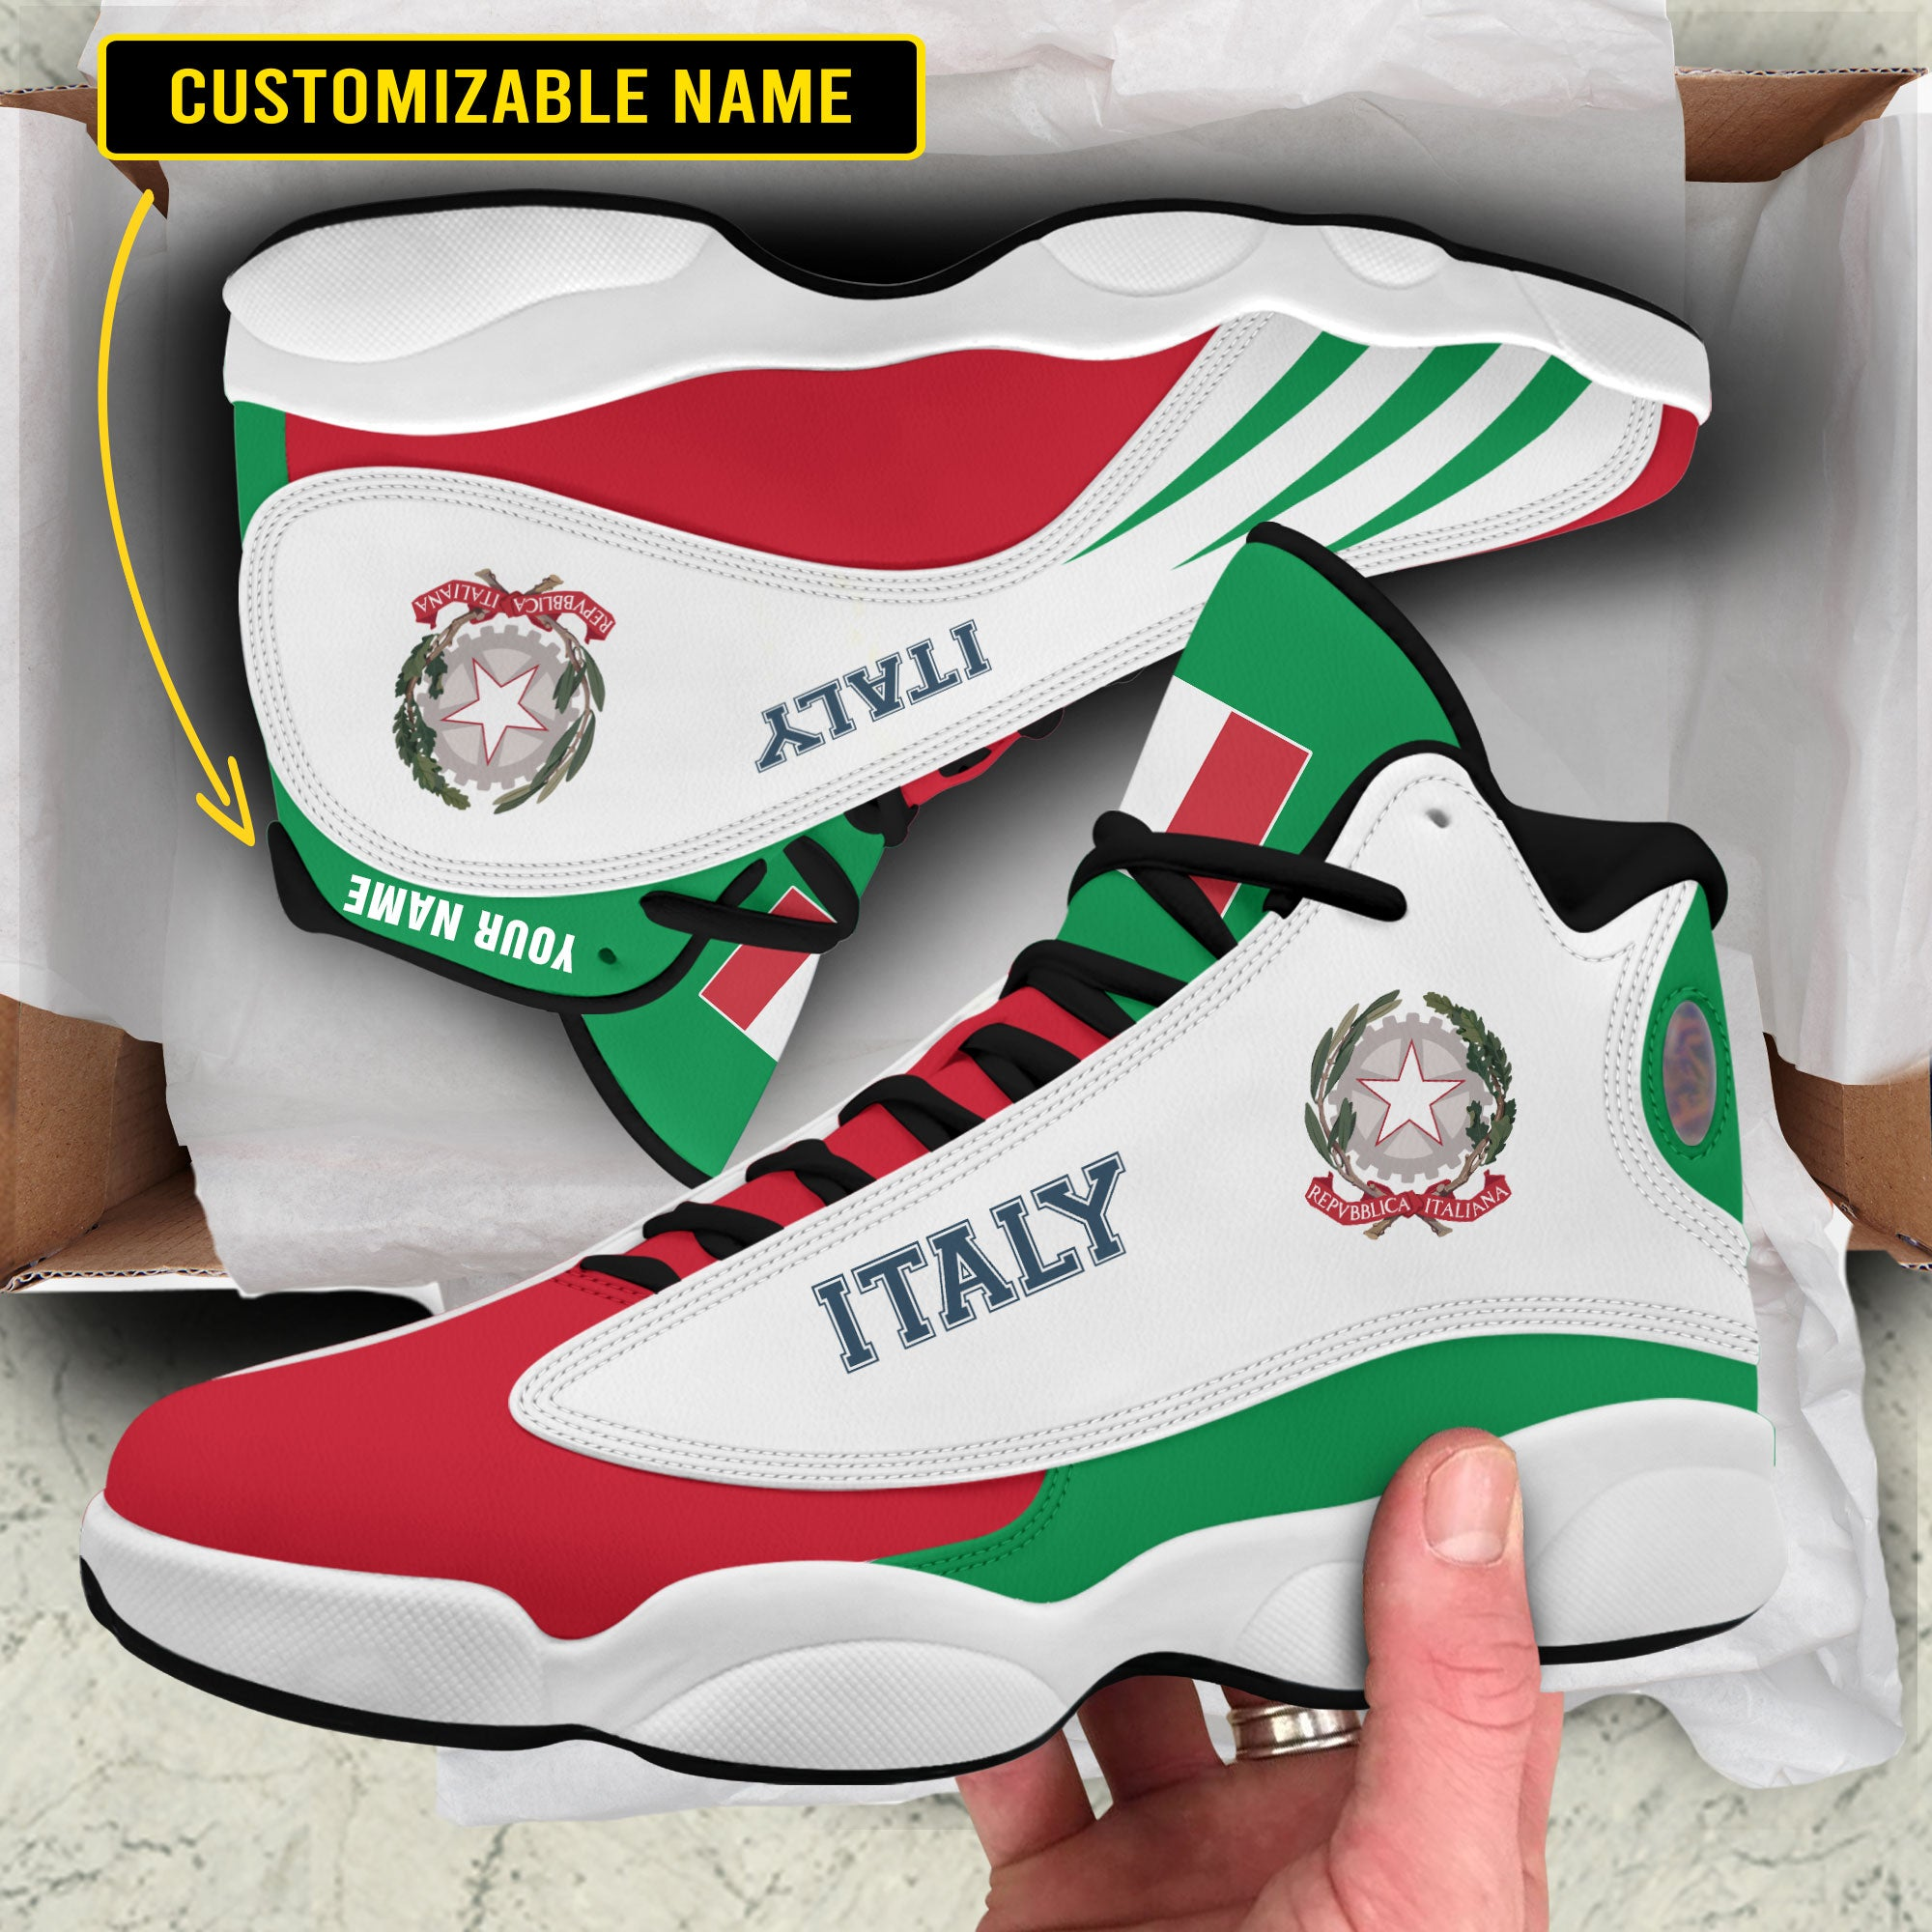 Air JD 13 - Limited edition - Italy